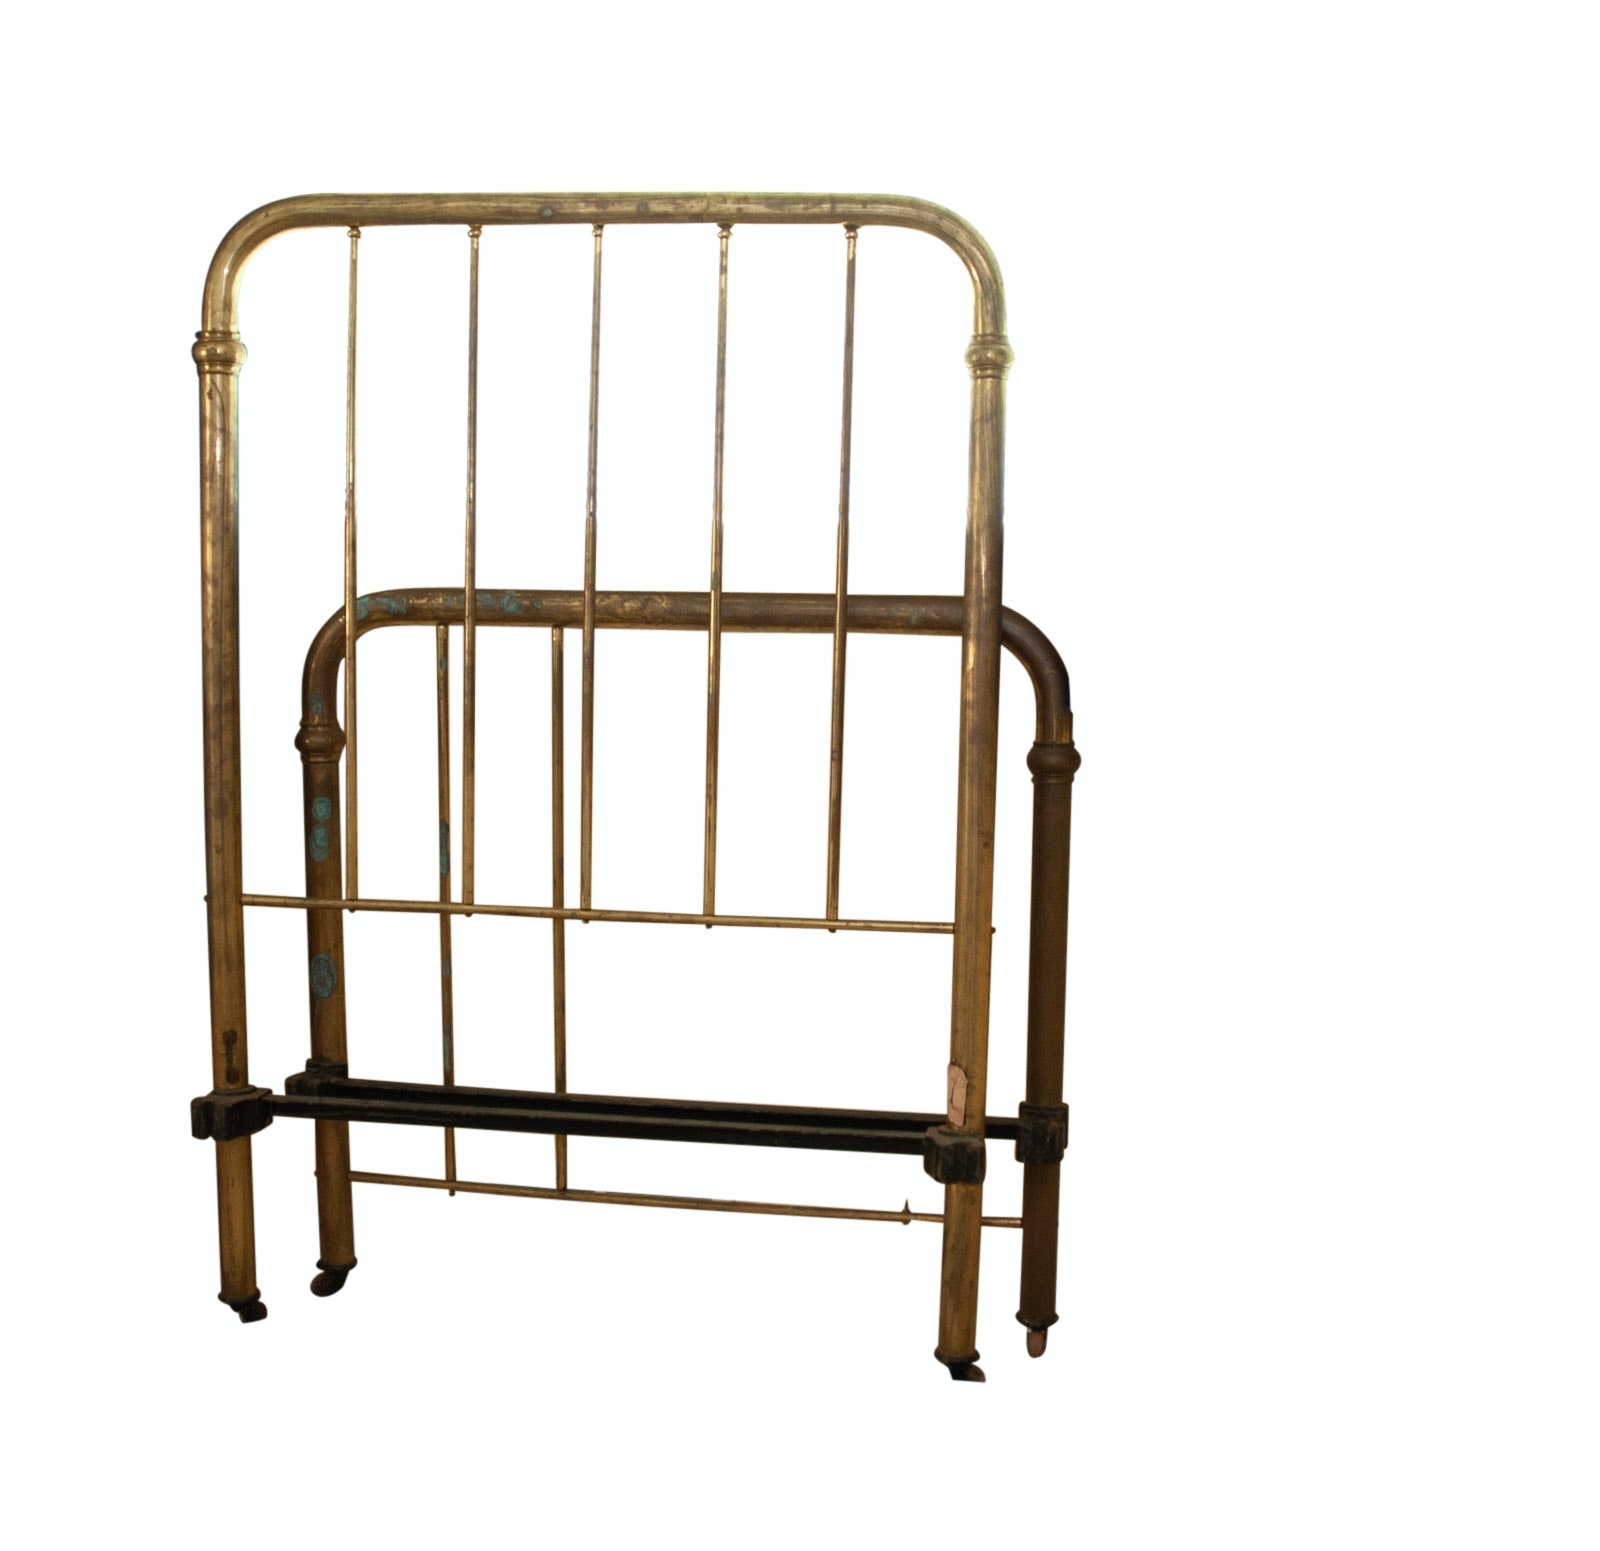 Antique Brass Twin Bed Frame